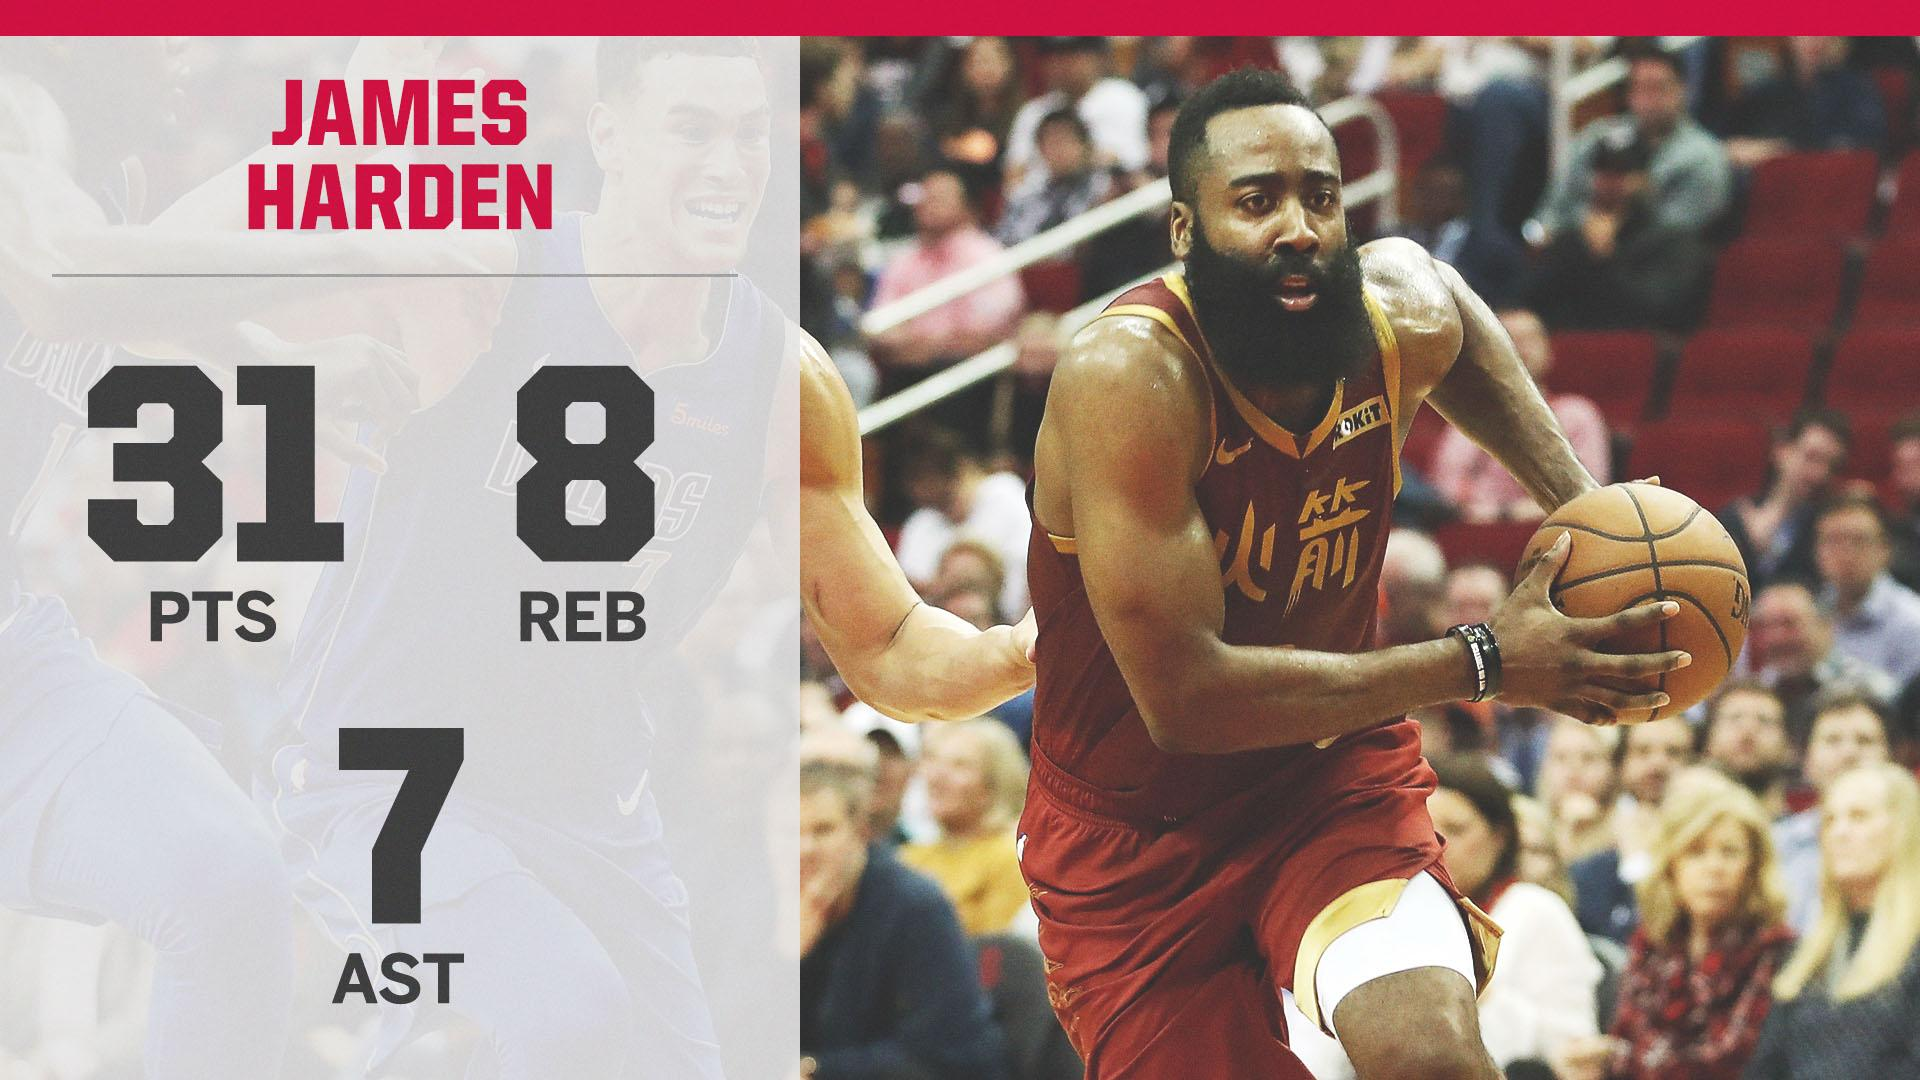 Harden has dropped 30+ points in 30 straight games ��  The only other player to do that is Wilt Chamberlain. https://t.co/okrm8dW3BJ